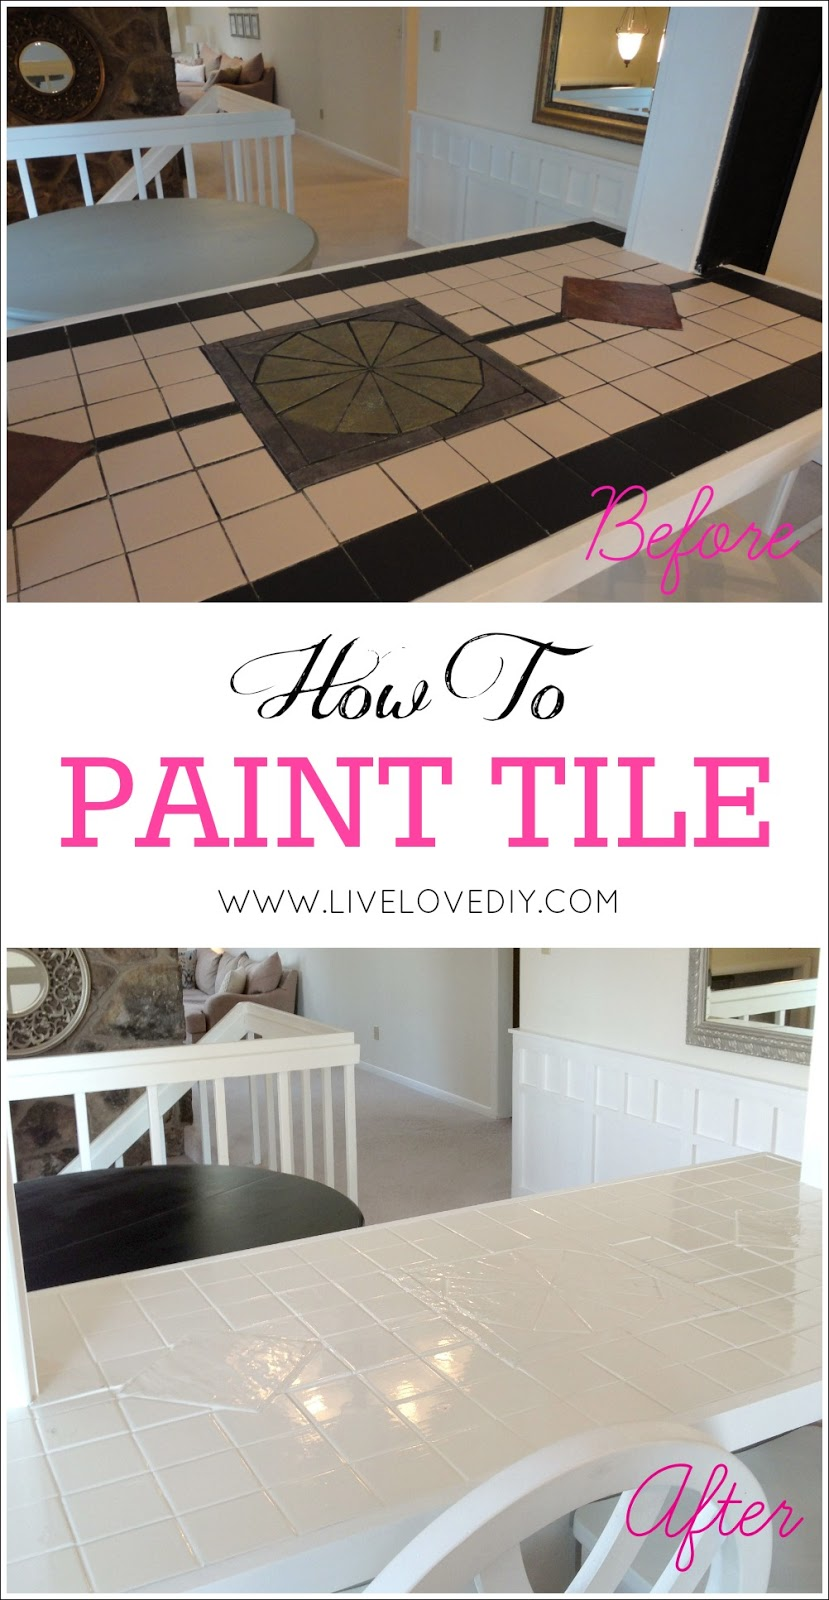 Ceramic tile paint livelovediy how to paint tile countertops dailygadgetfo Gallery